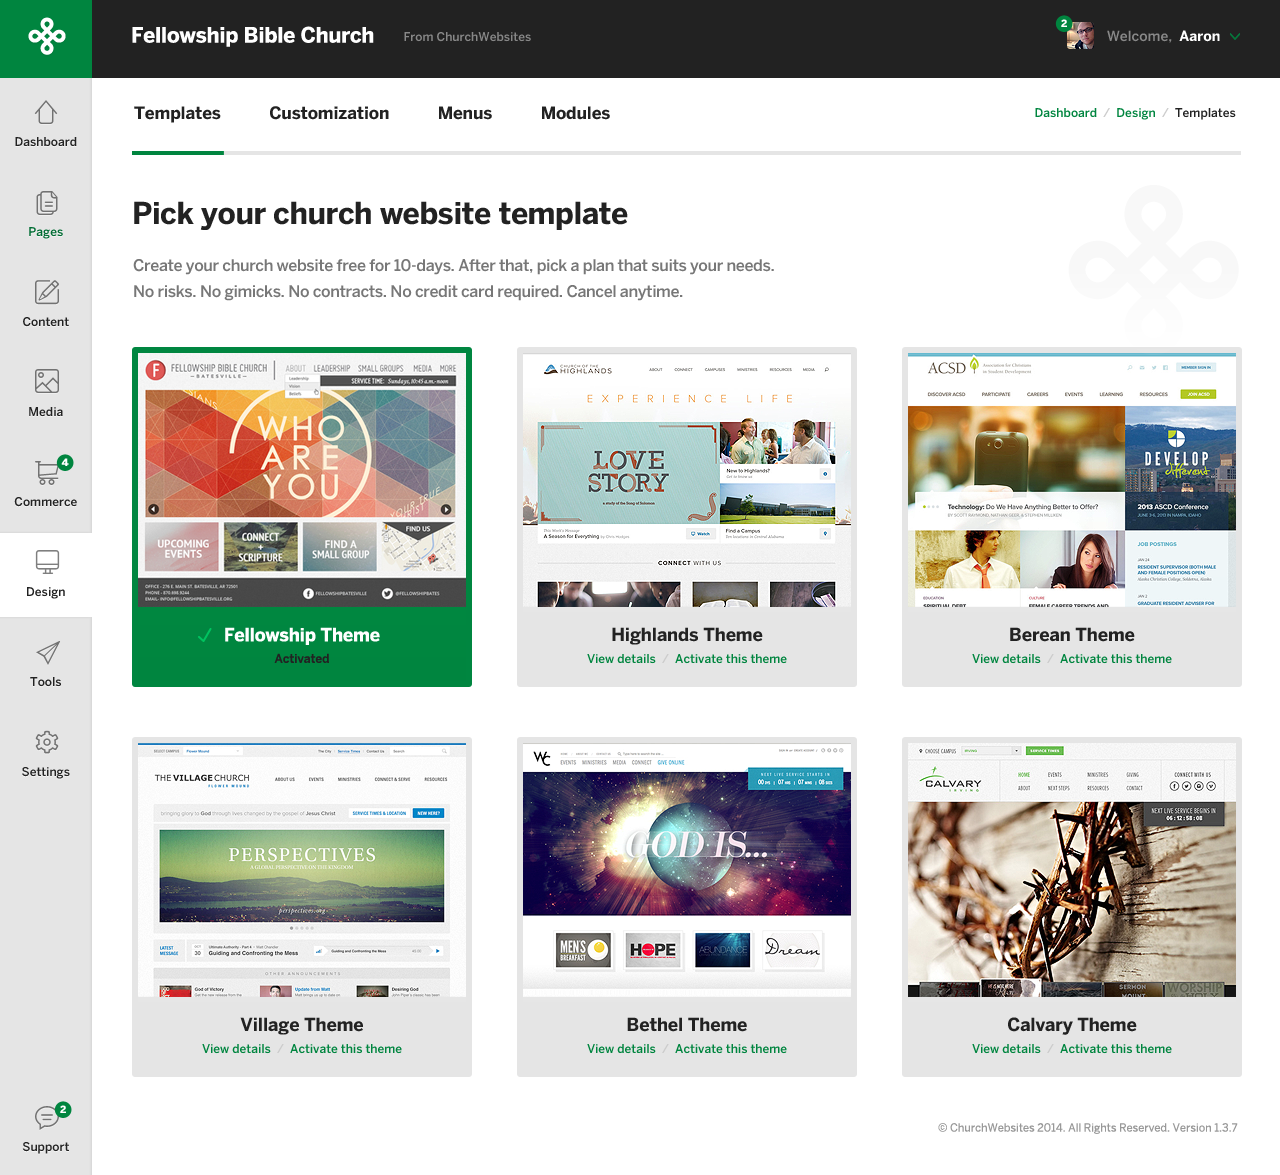 Dribbble - Church-CMS-Dashboard.png by Aaron Lynch